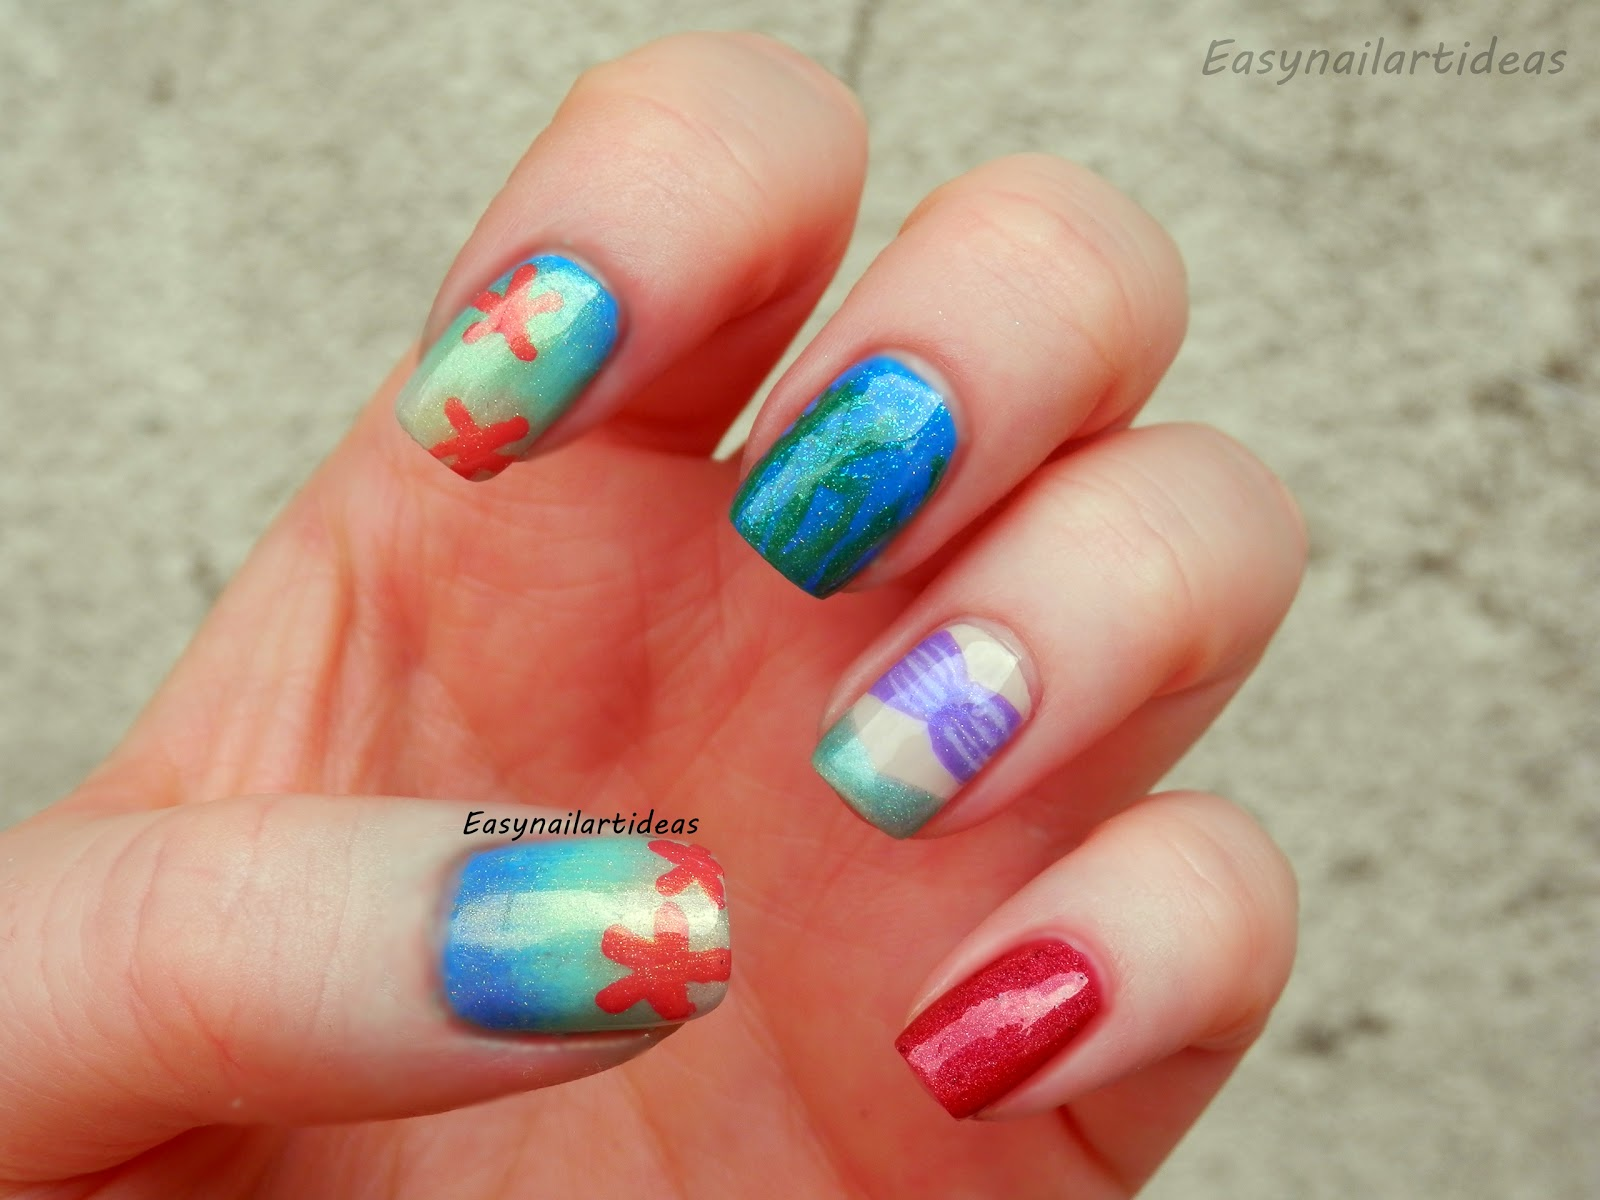 EASY NAIL ART and make-up IDEAS: Little Mermaid inspired ...